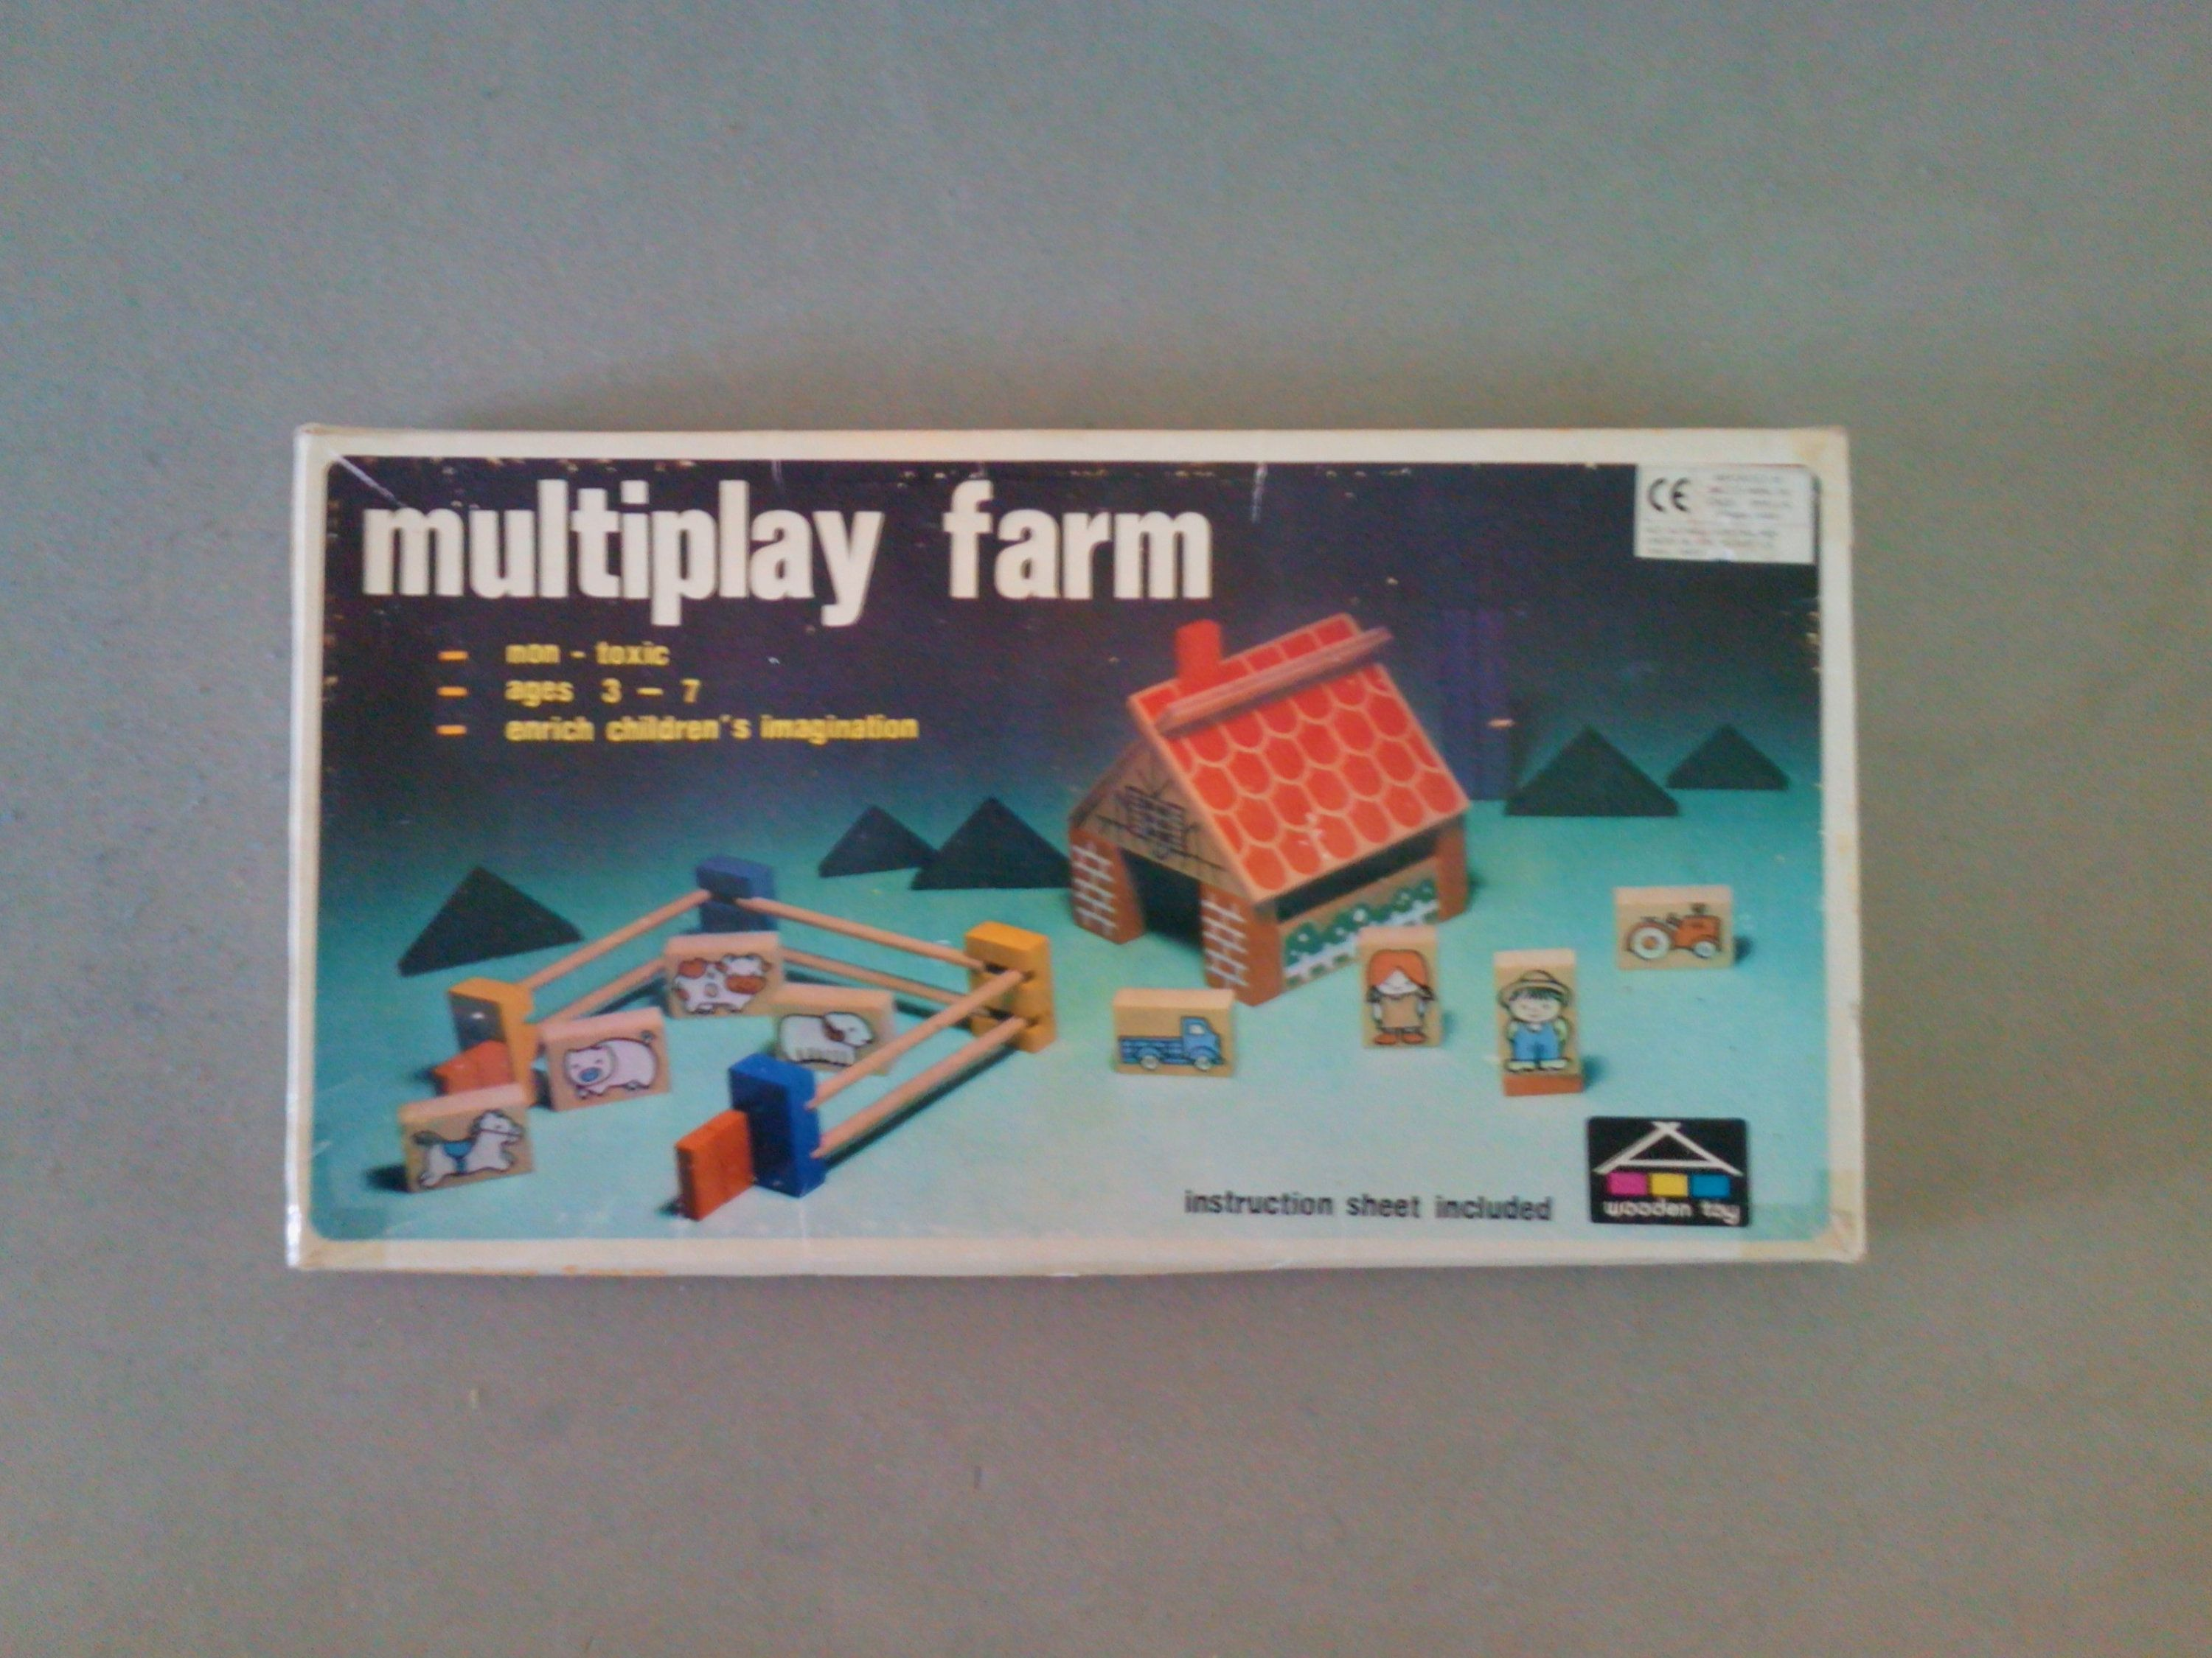 Mulitplay farm, wooden farm playset, childrens farm game